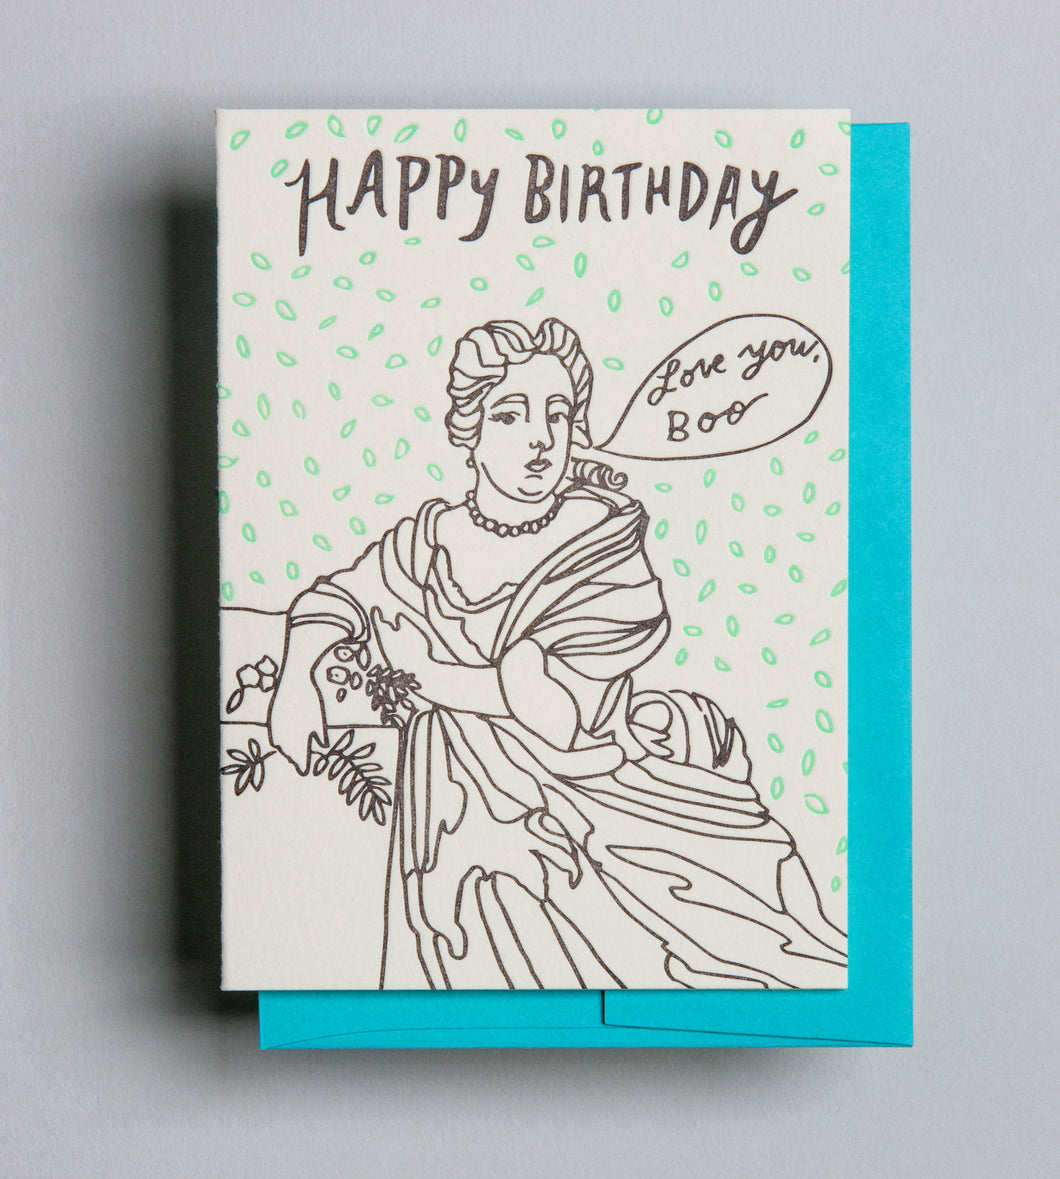 Letterpress Birthday card by Wolf and Wren Press- Happy Birthday Boo